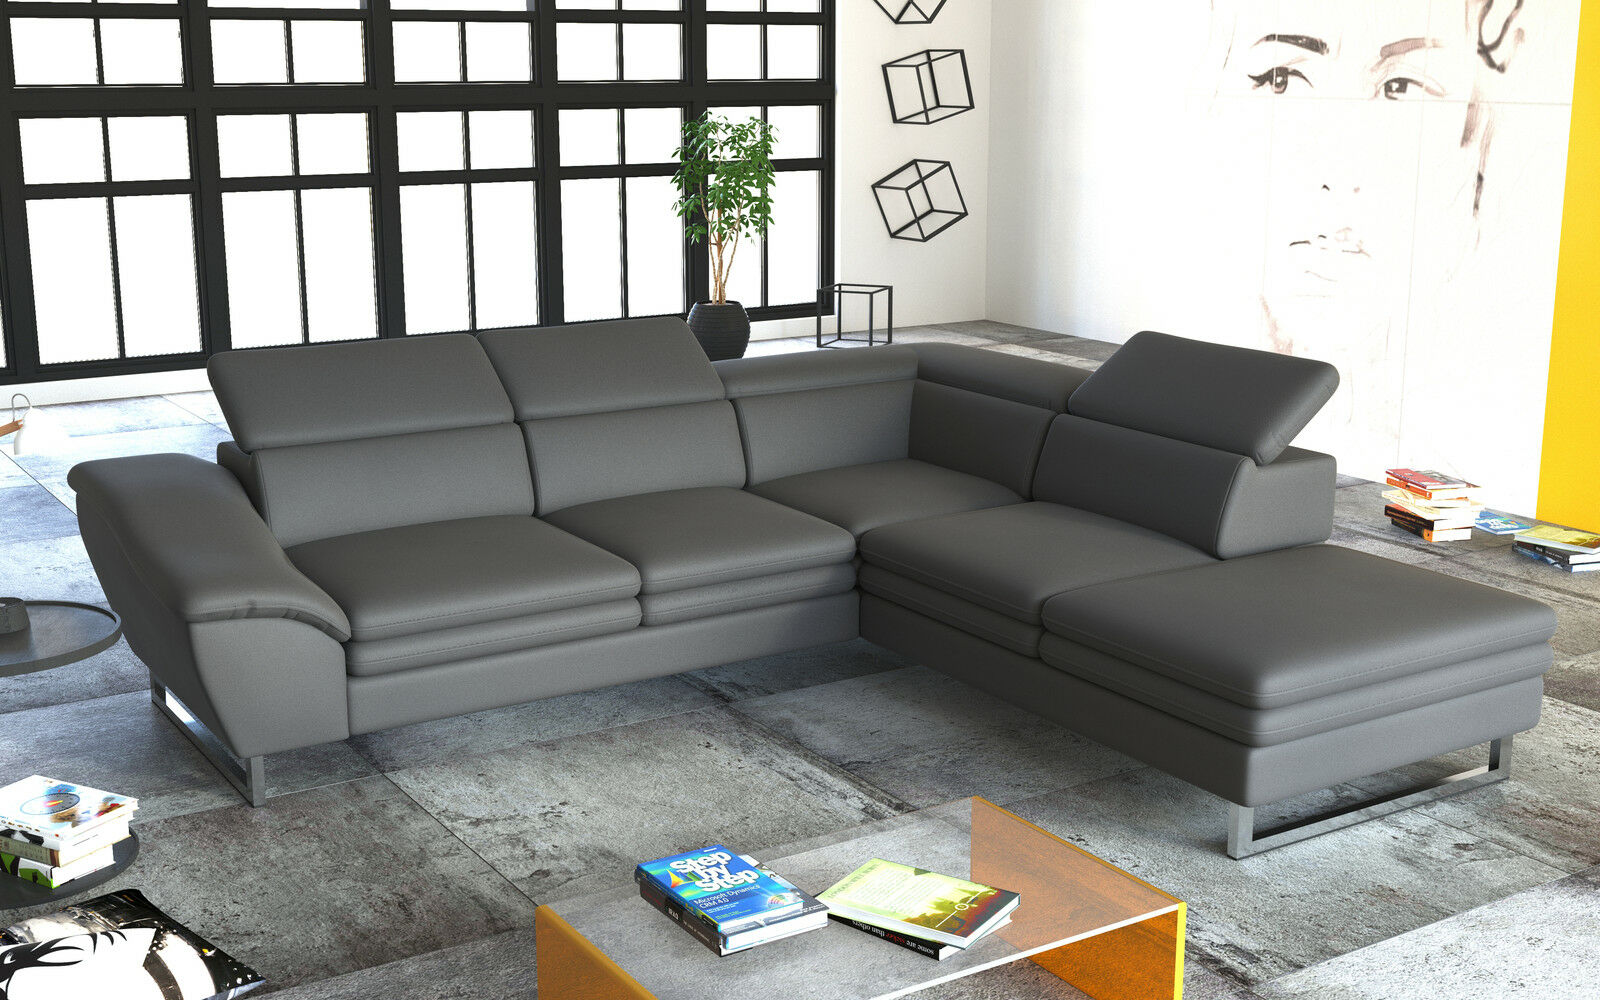 Couch couchgarnitur michellini 1 sofagarnitur sofa for Sofa wohnlandschaft